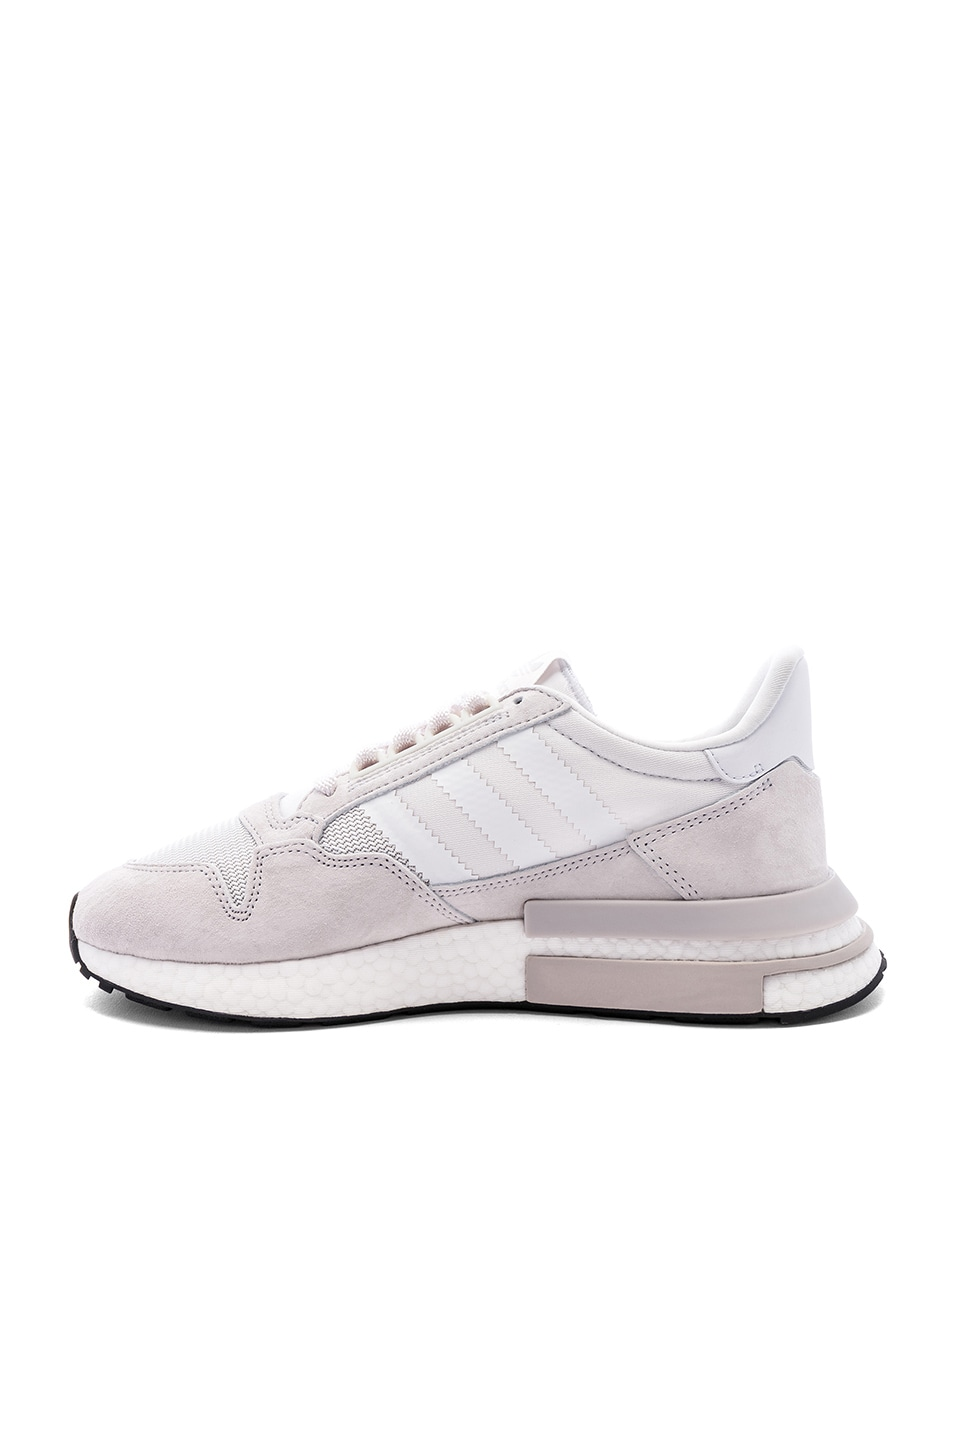 Image 5 of adidas Originals ZX 500 RM in Cloud White & White & Cloud White